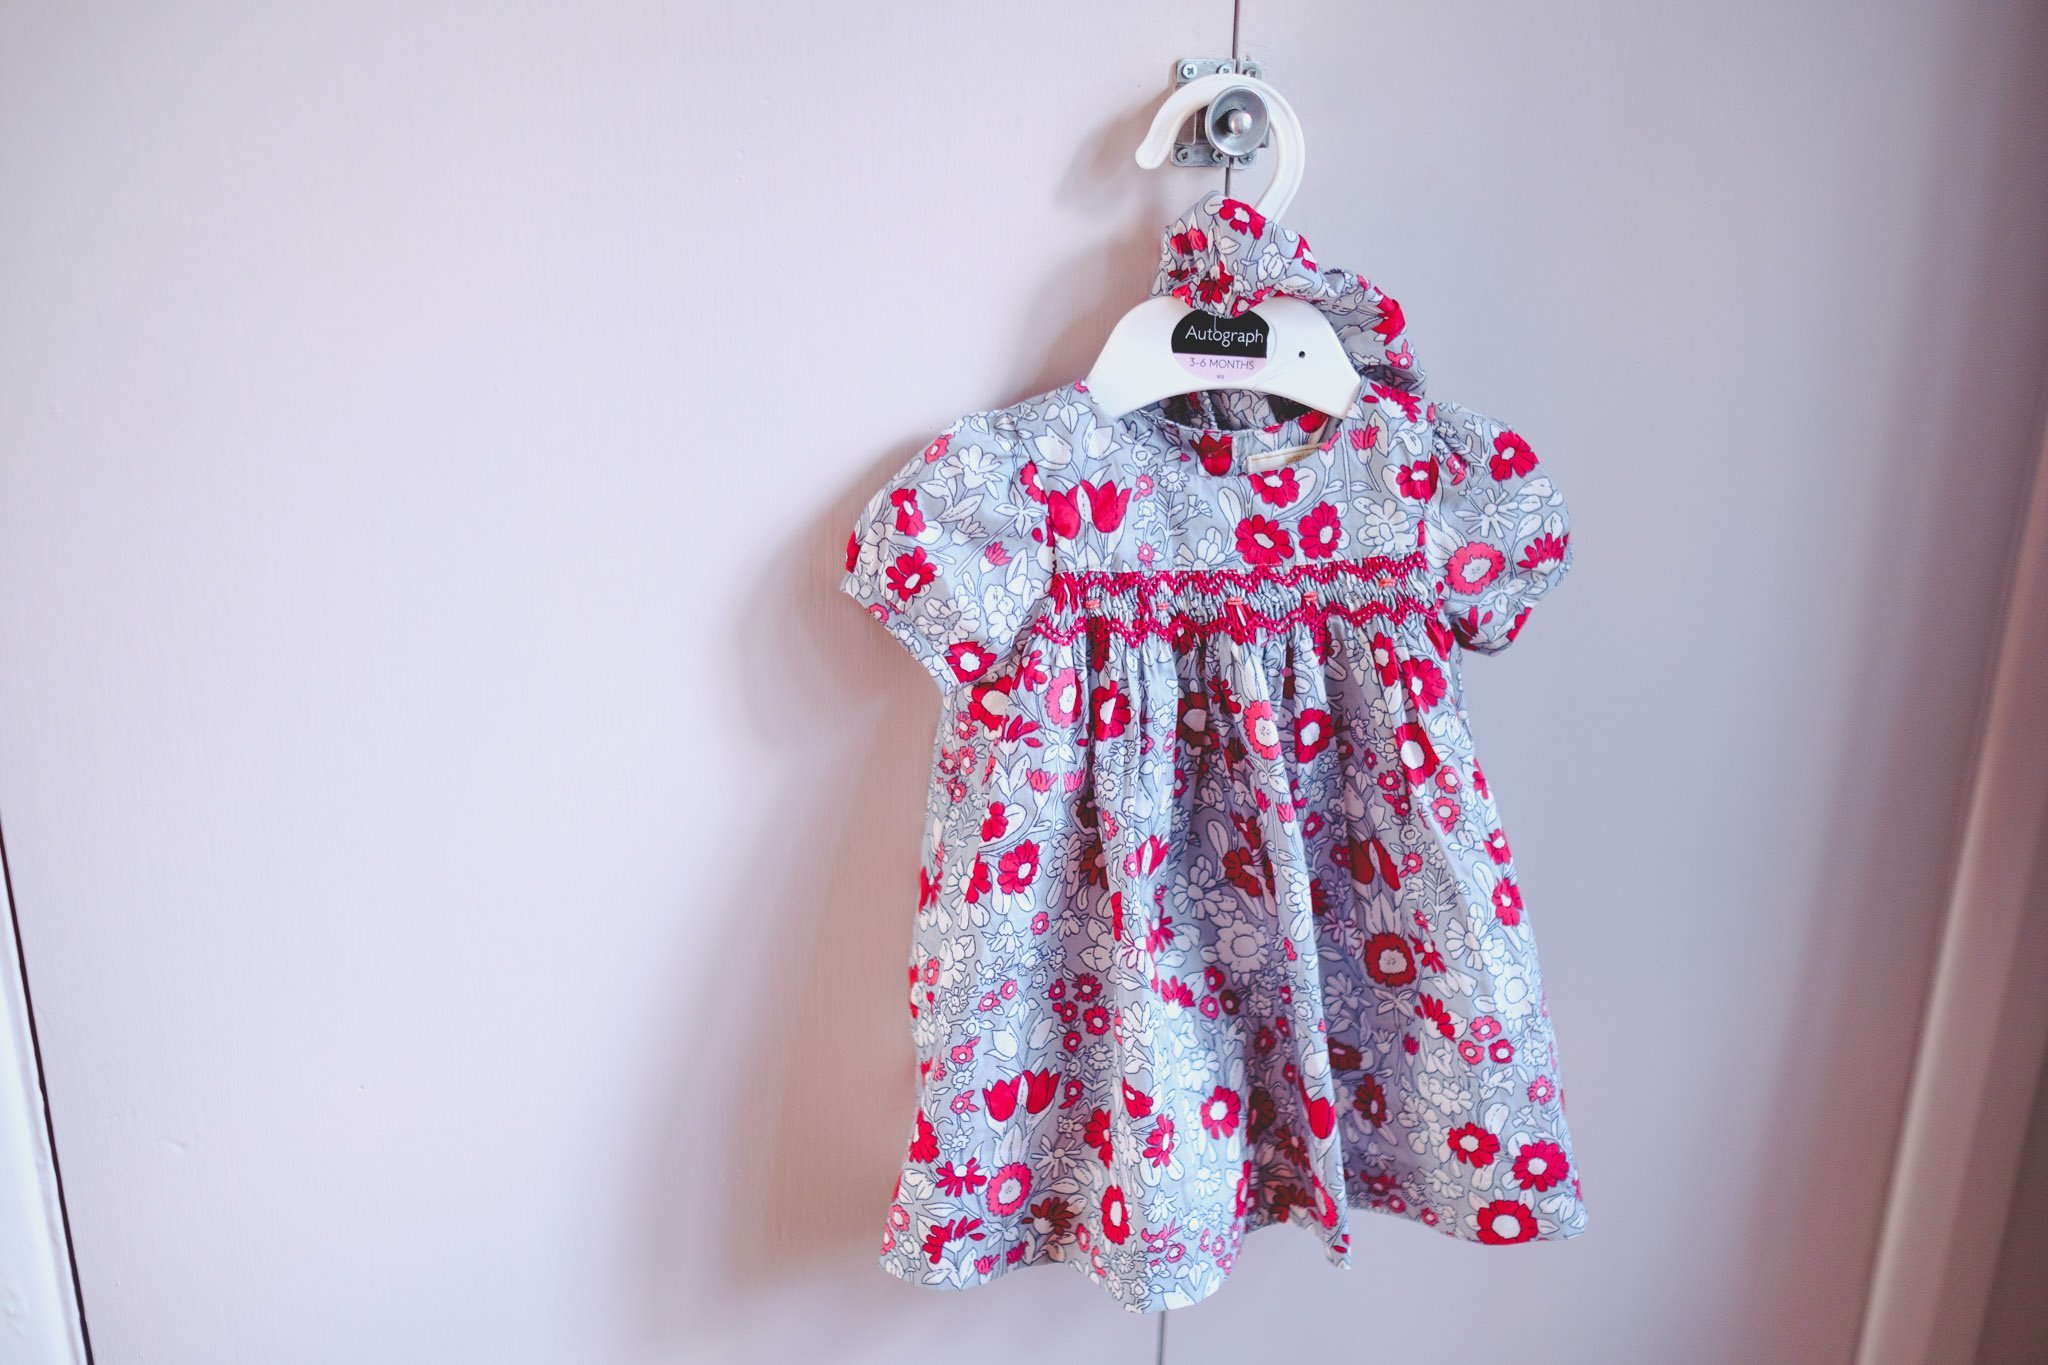 Baby dress on a hanger Lifestyle photography Chiswick